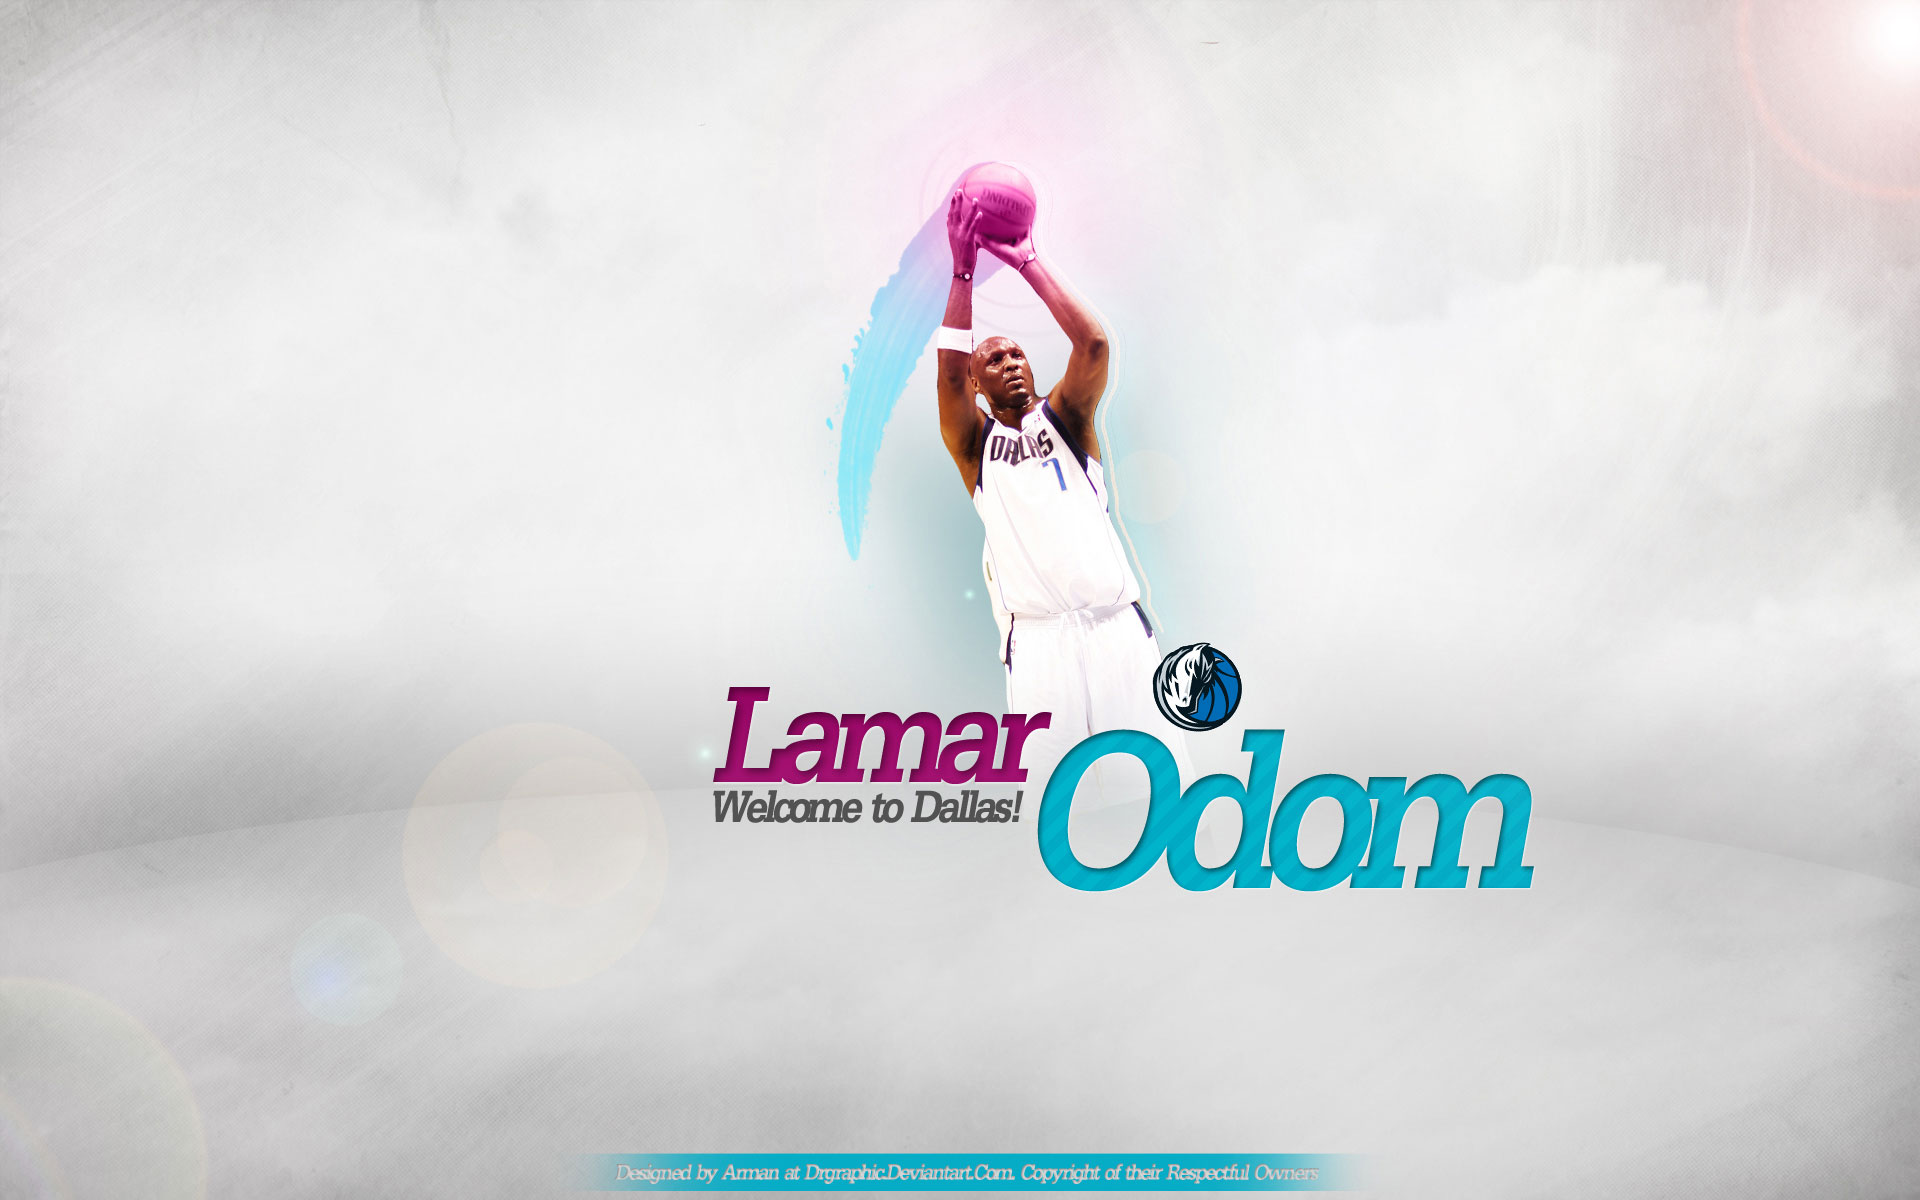 http://www.basketwallpapers.com/Images-10/Lamar-Odom-Welcome-To-Dallas-Wallpaper-BasketWallpapers.com-.jpg